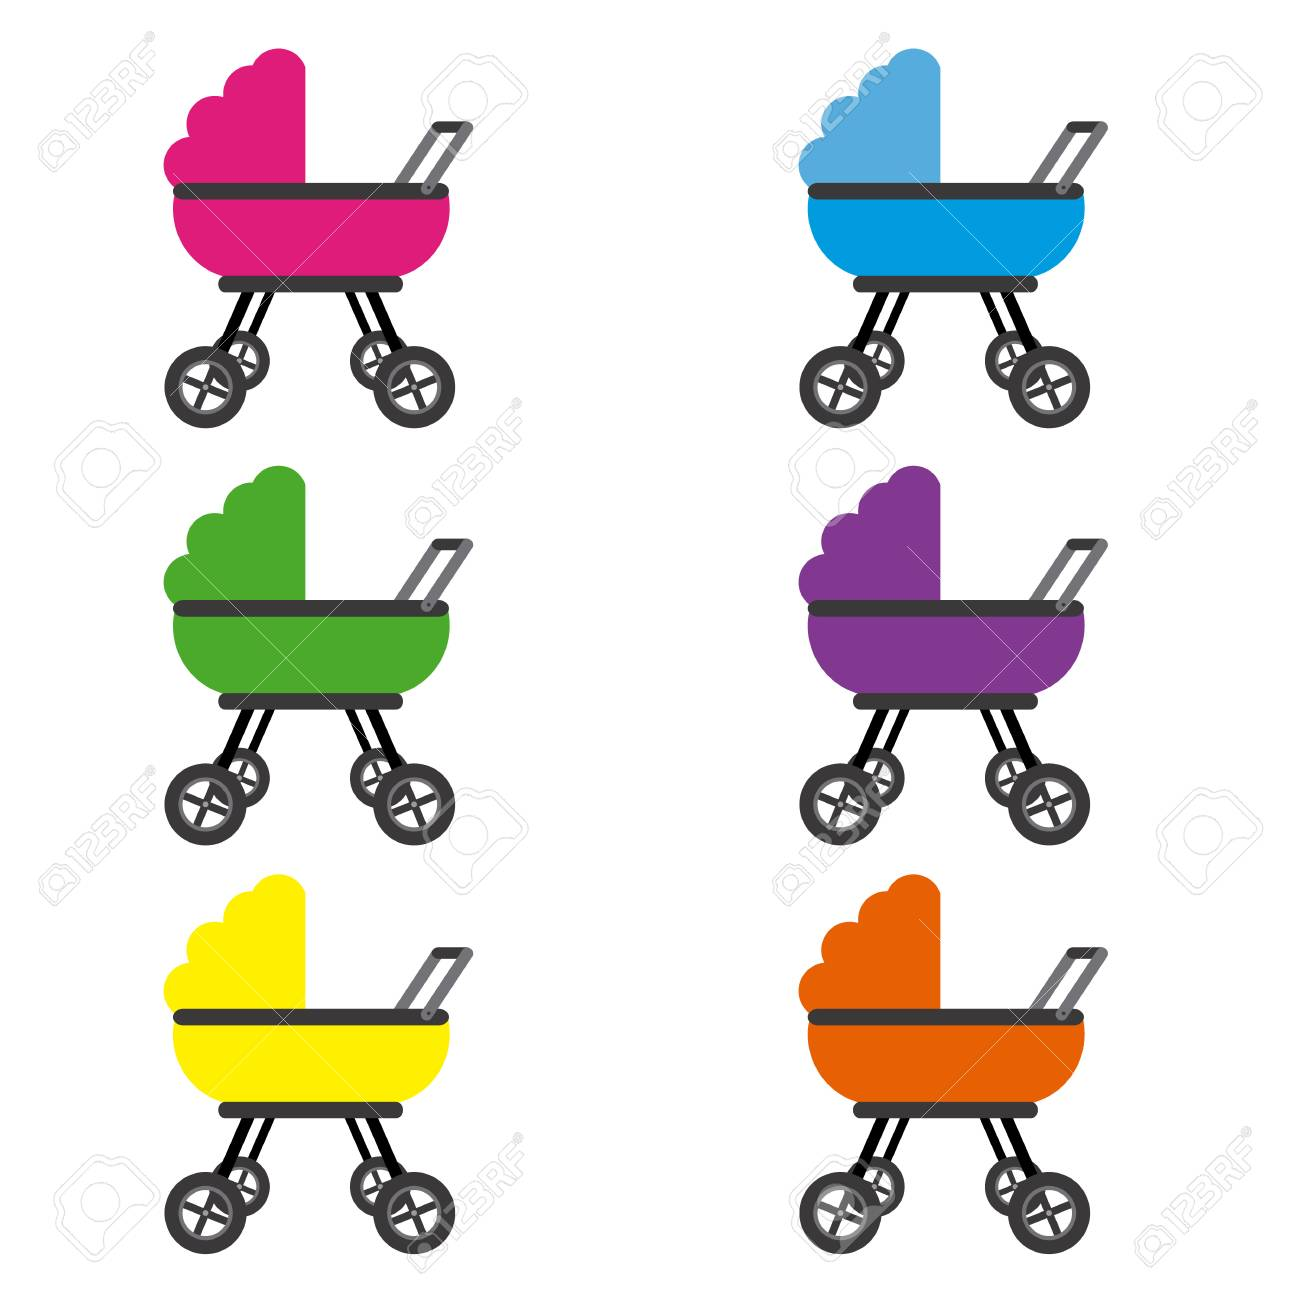 571d216ce Baby Stroller Set On Plain Background Royalty Free Cliparts